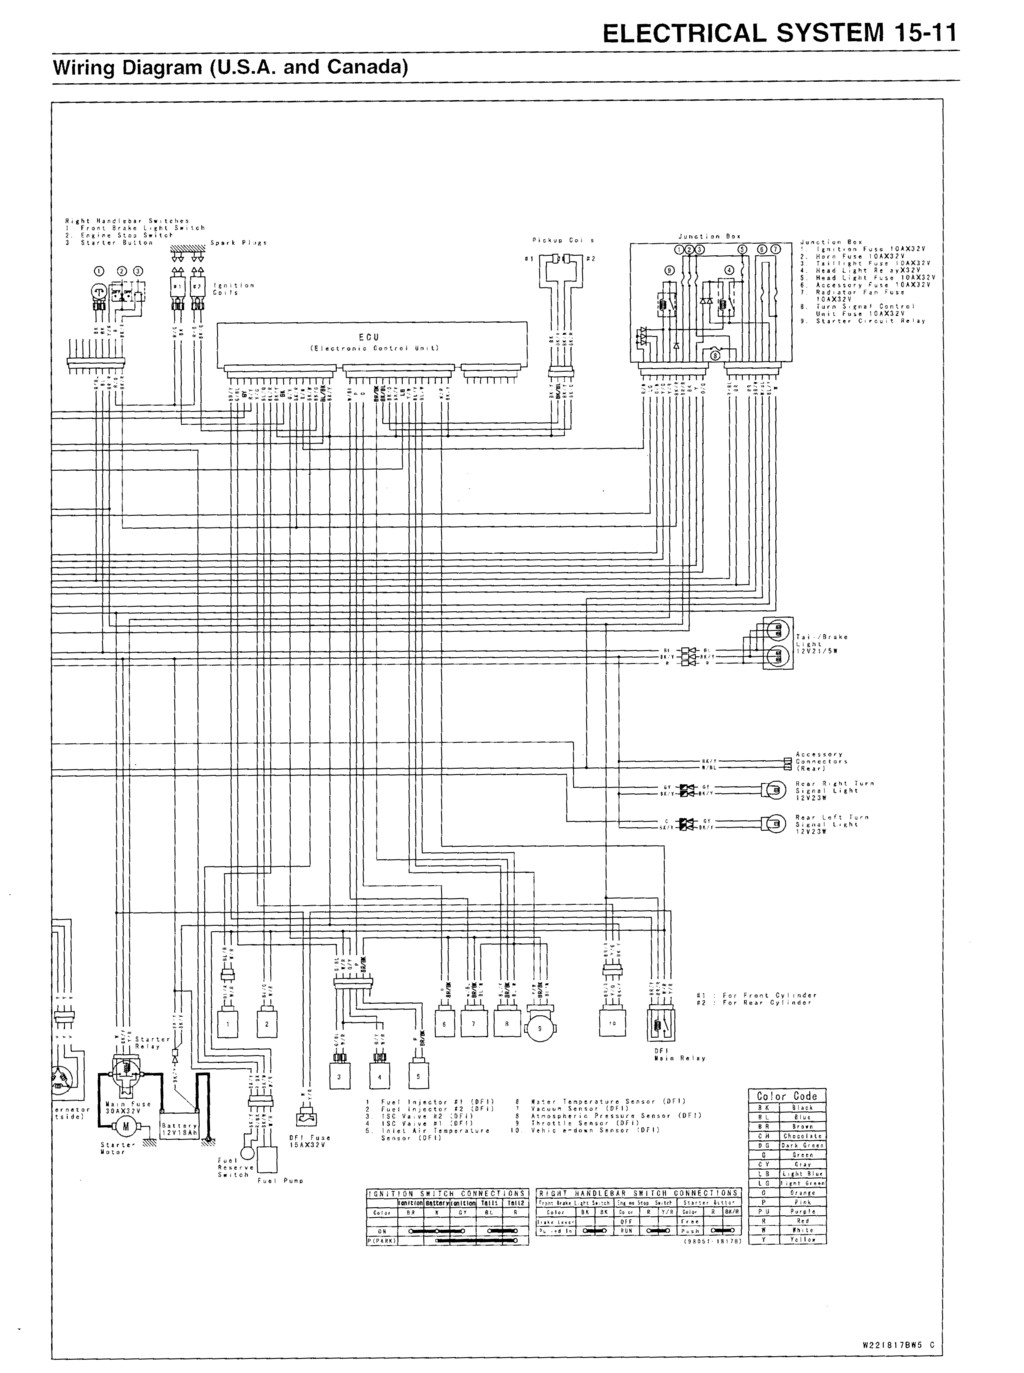 vulcan wiring diagrams gadget s fixit page rh gadgetsfixitpage com 2001  F150 Electrical Diagram Fifth Wheel Camper Wiring Diagrams